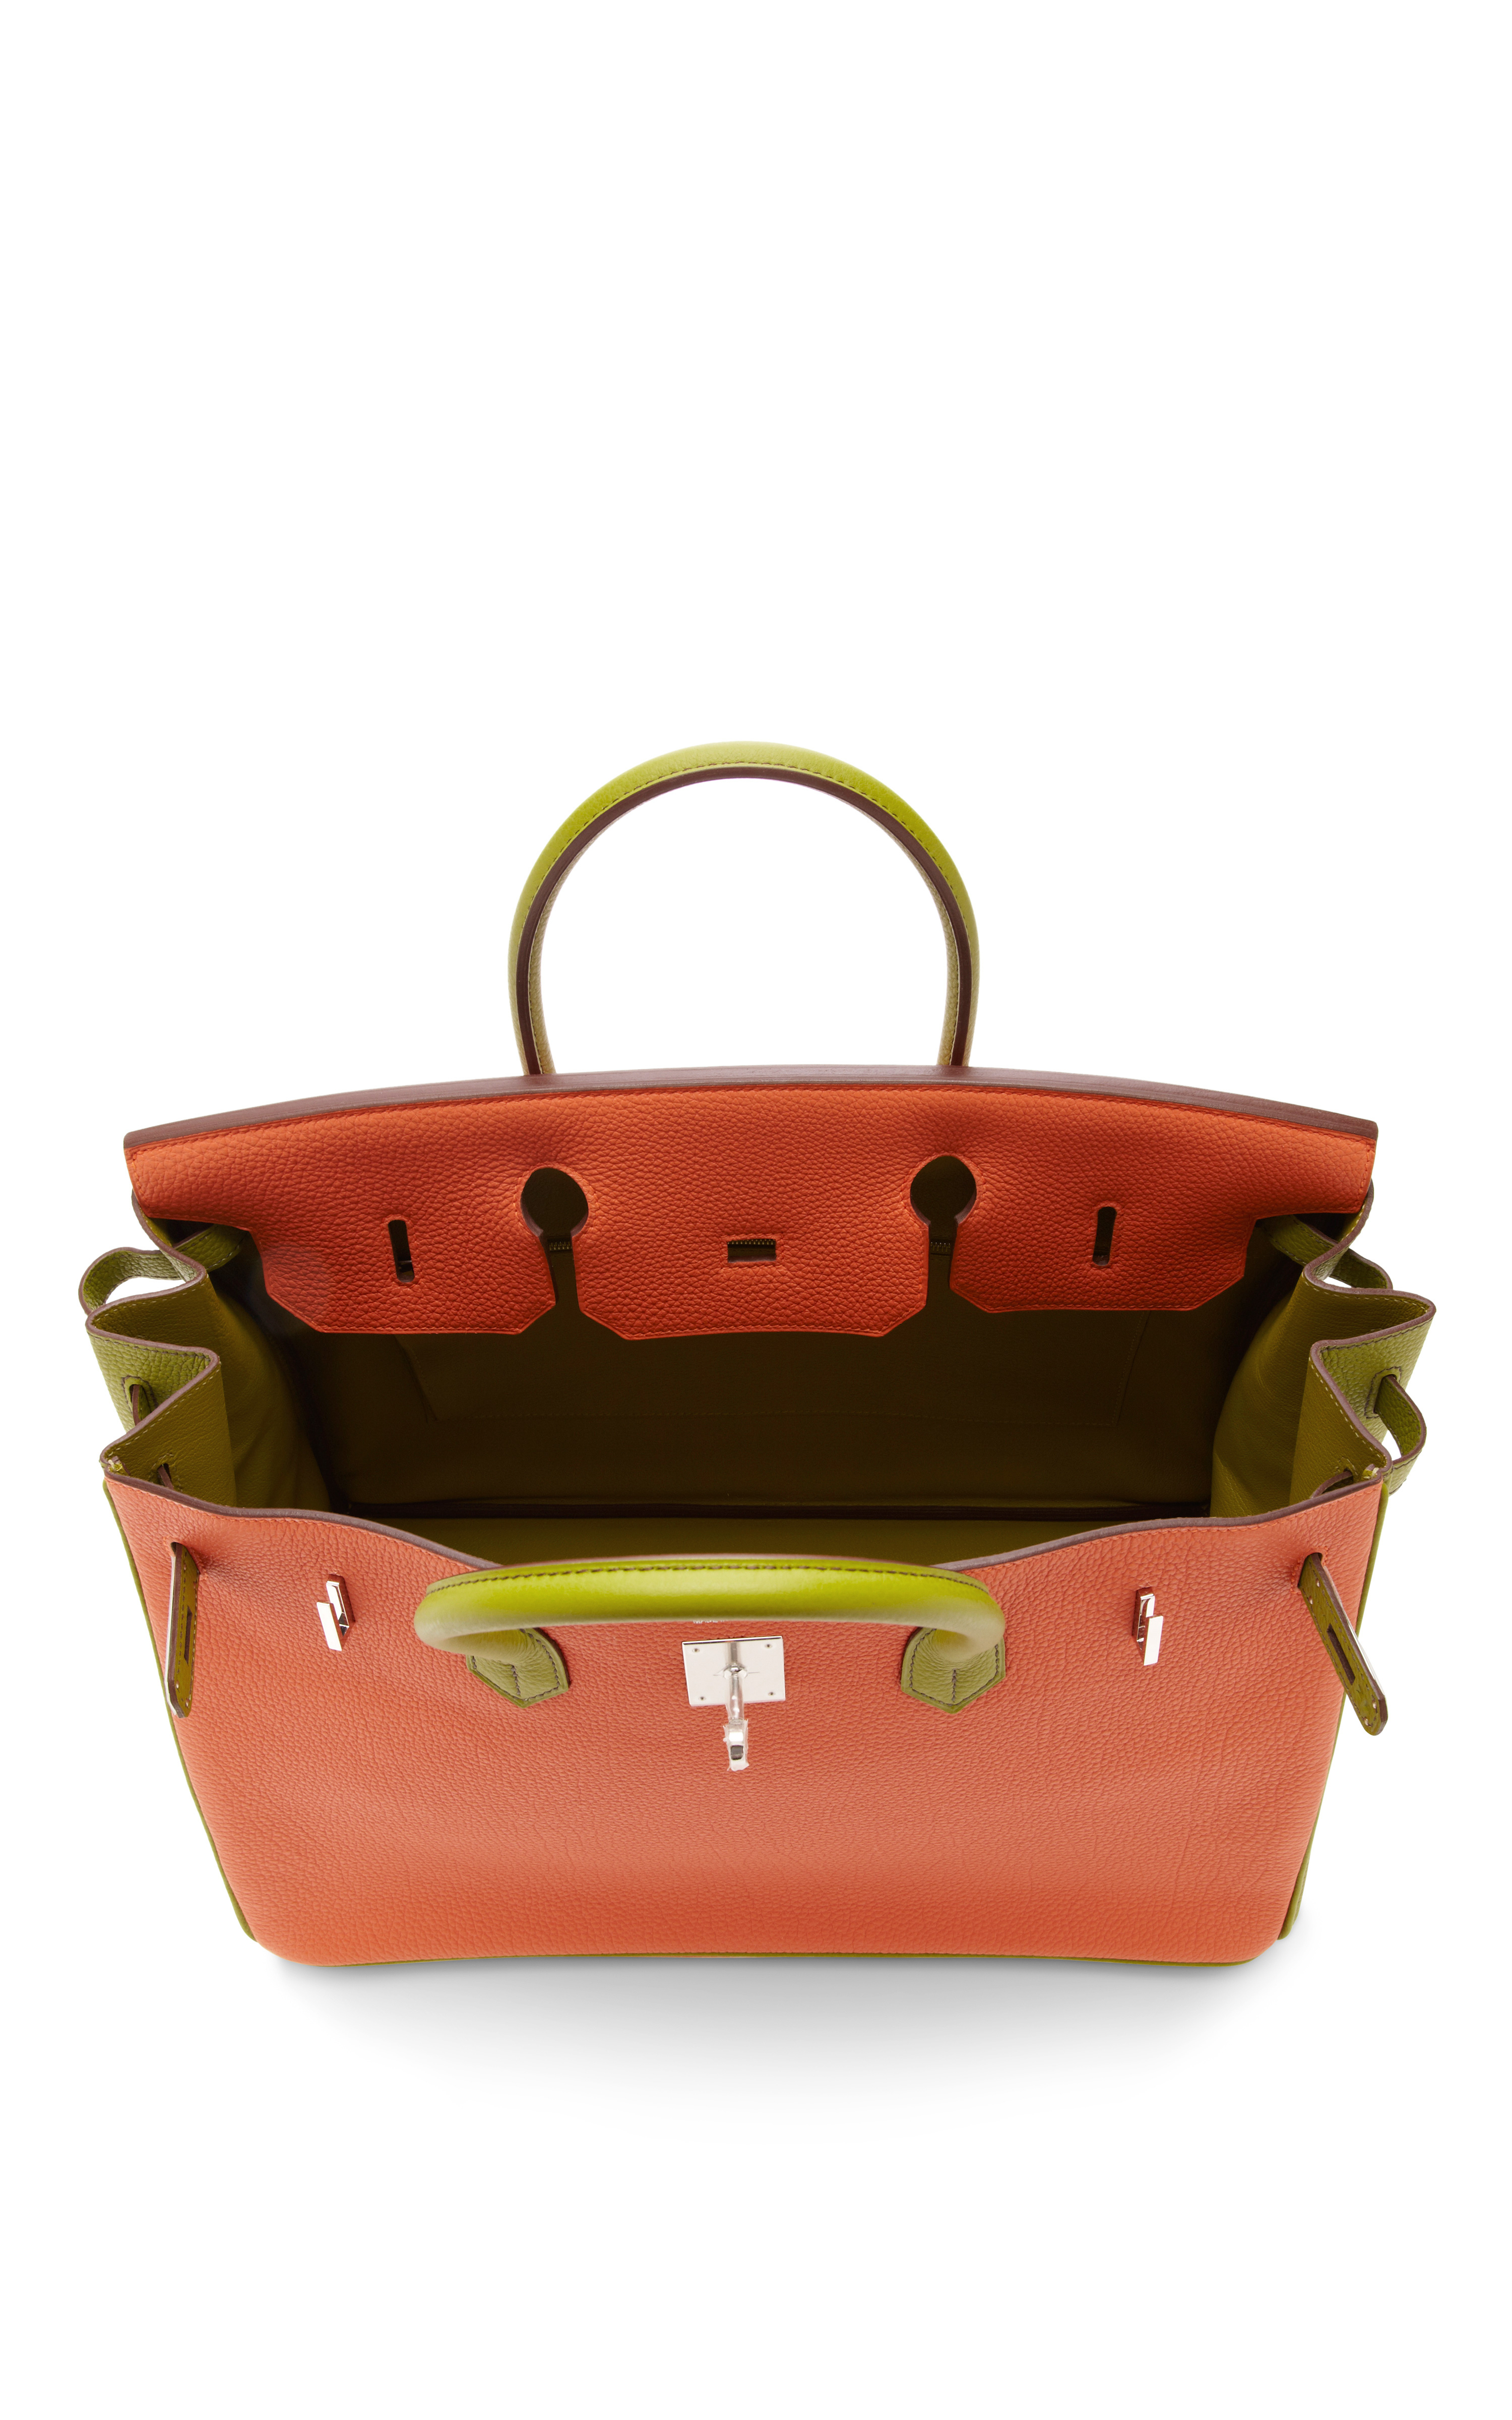 Heritage auctions special collection Hermes 40cm Orange H Vert ...